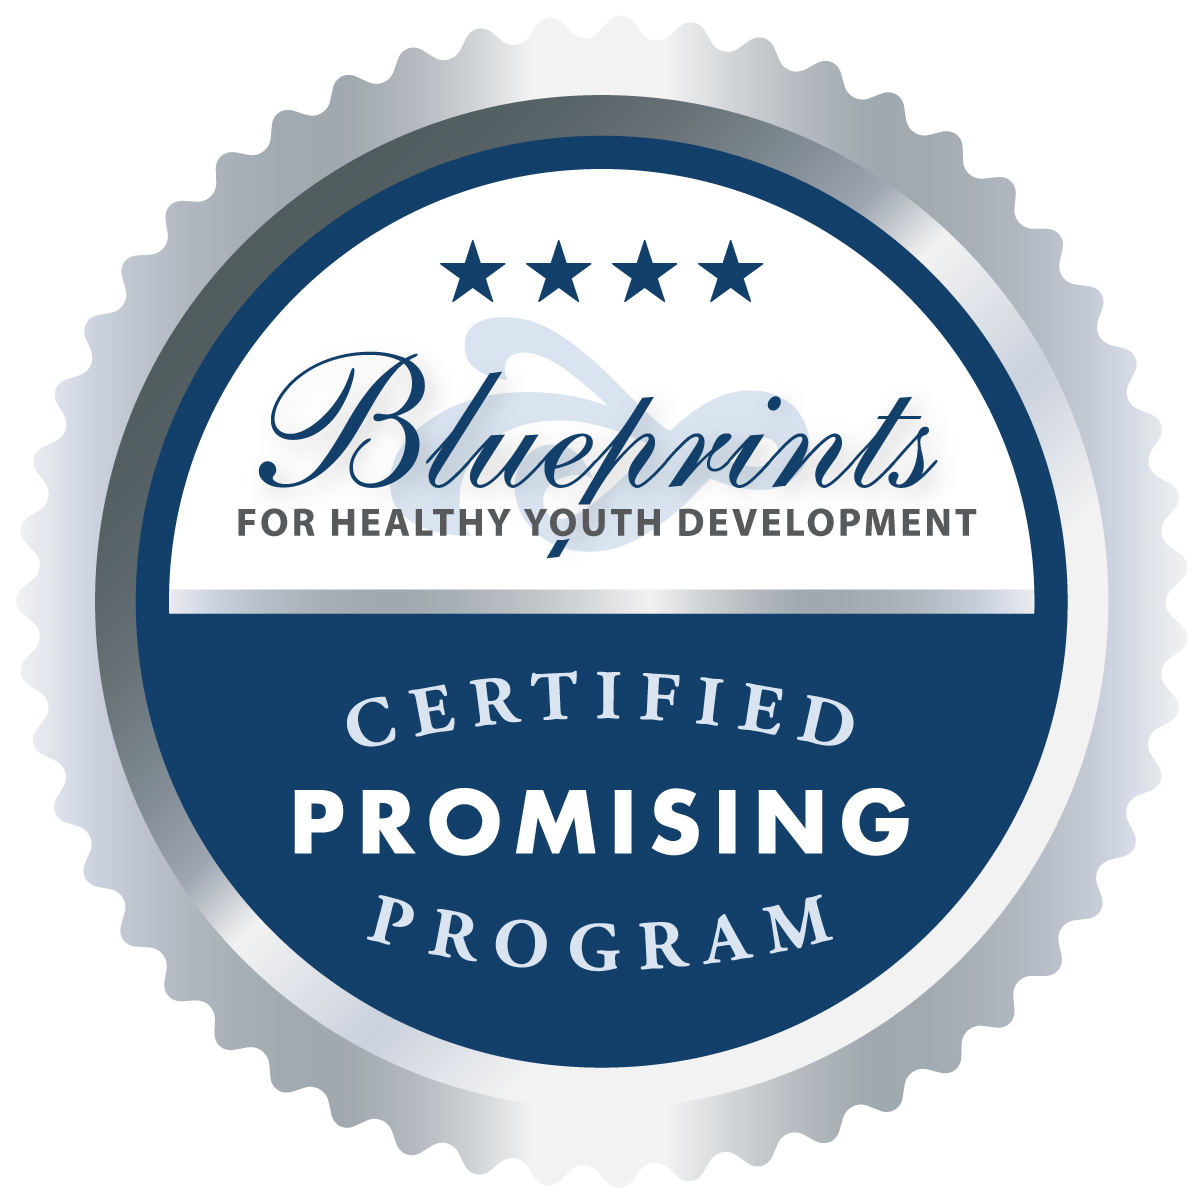 Certification image for Promising programs